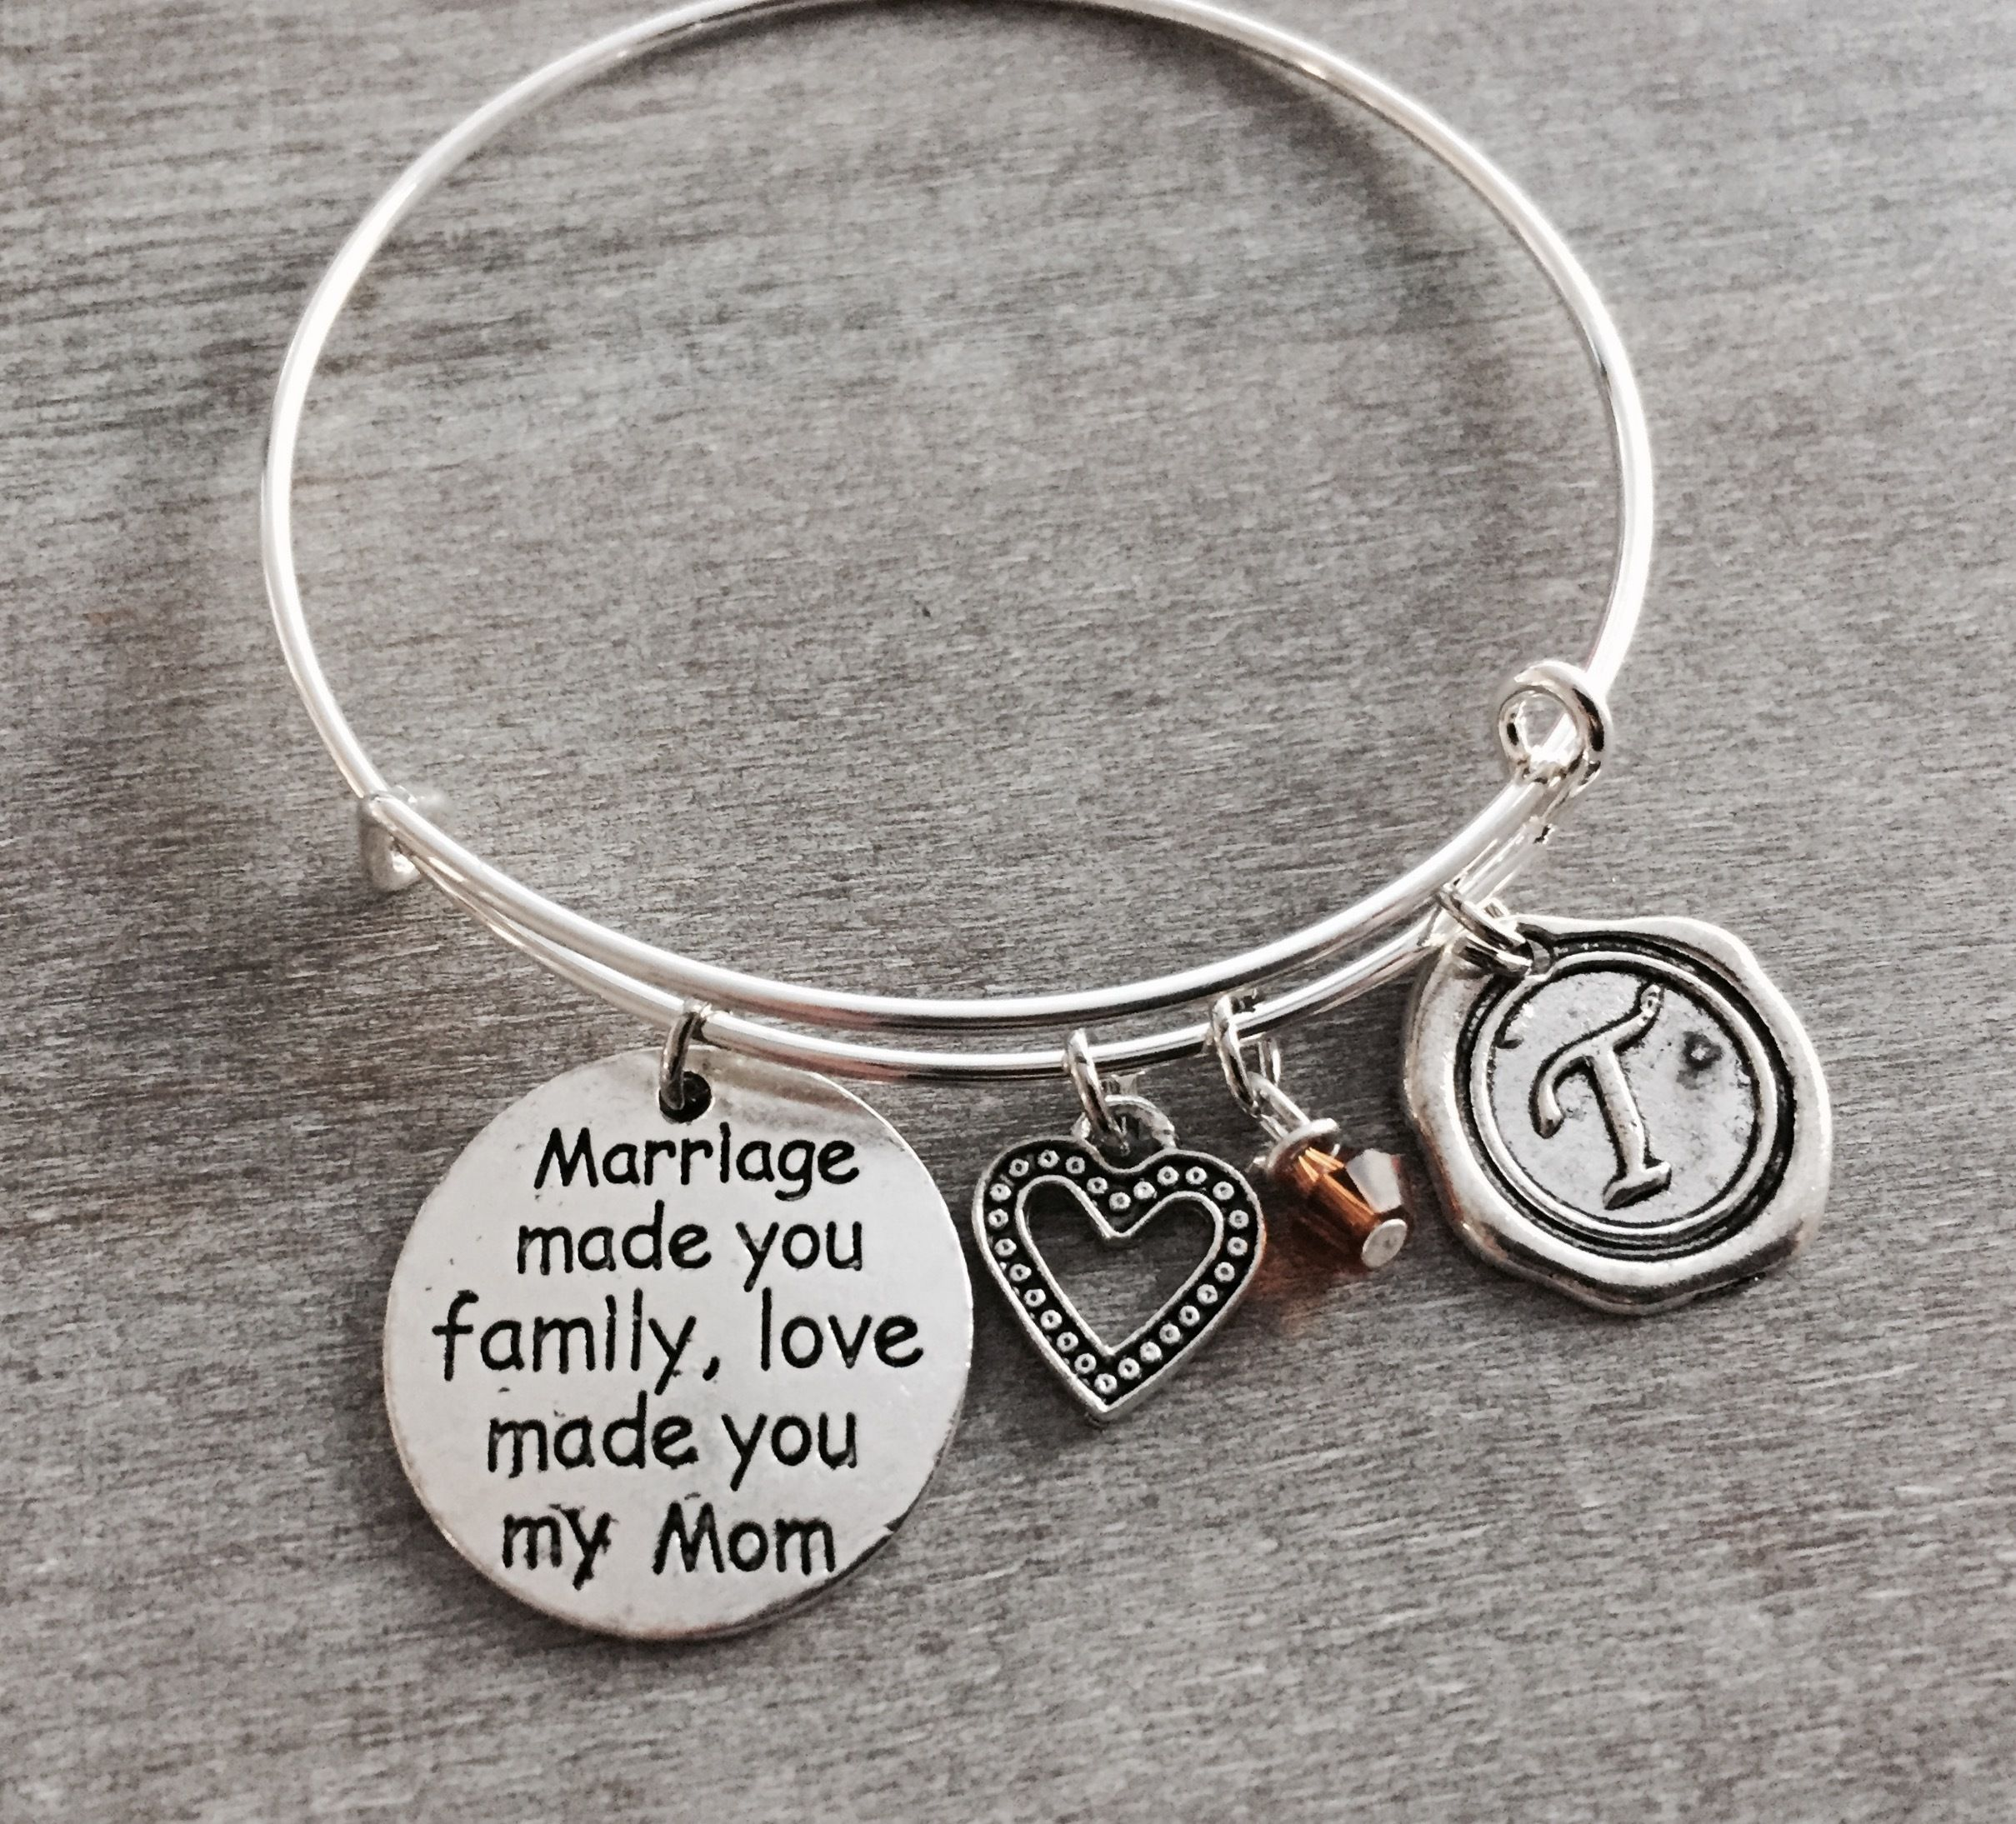 fullxfull handstamped handmade giftmothers il handmademothers personalized bracelet daypersonalized gift p mother bangle for jewelry her